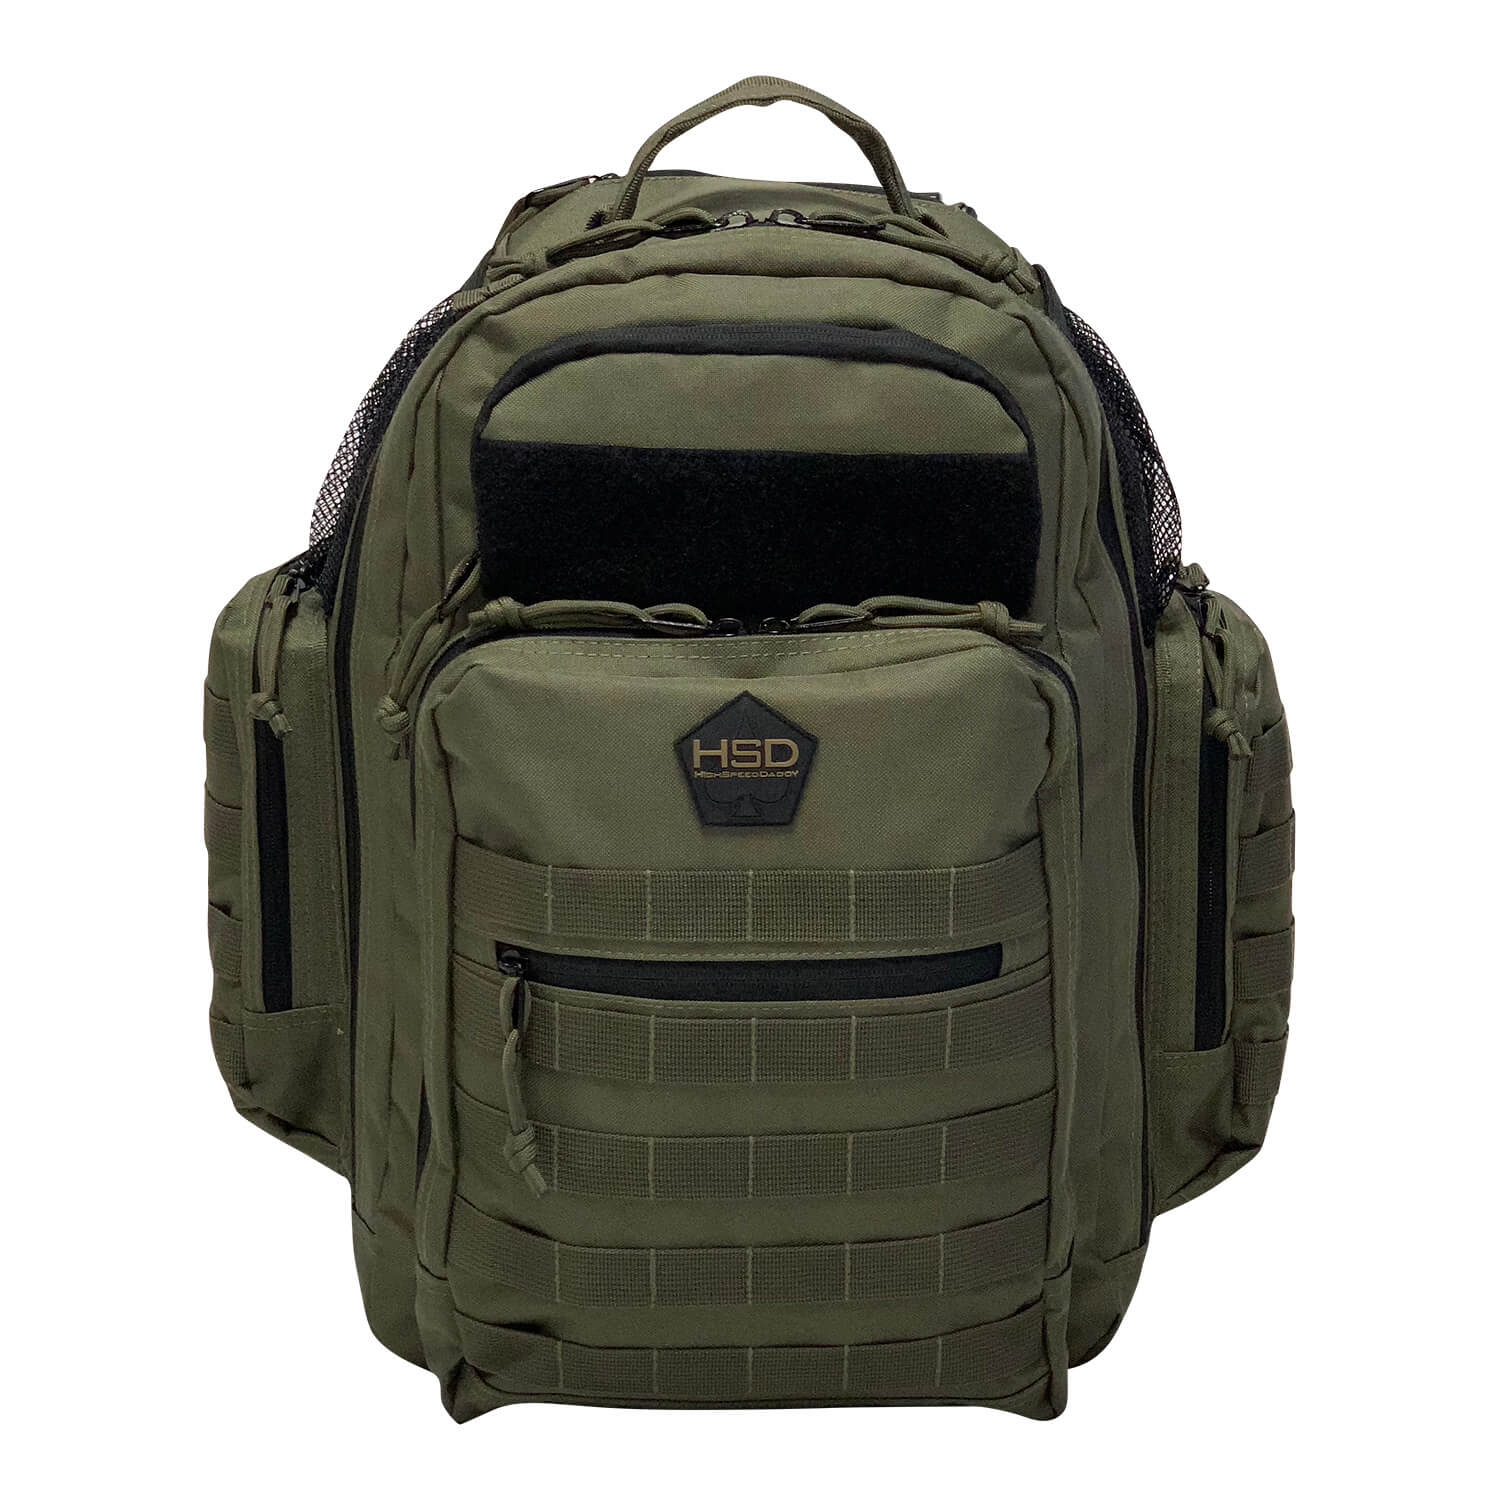 Tactical Diaper Bag Backpack - Black - Front